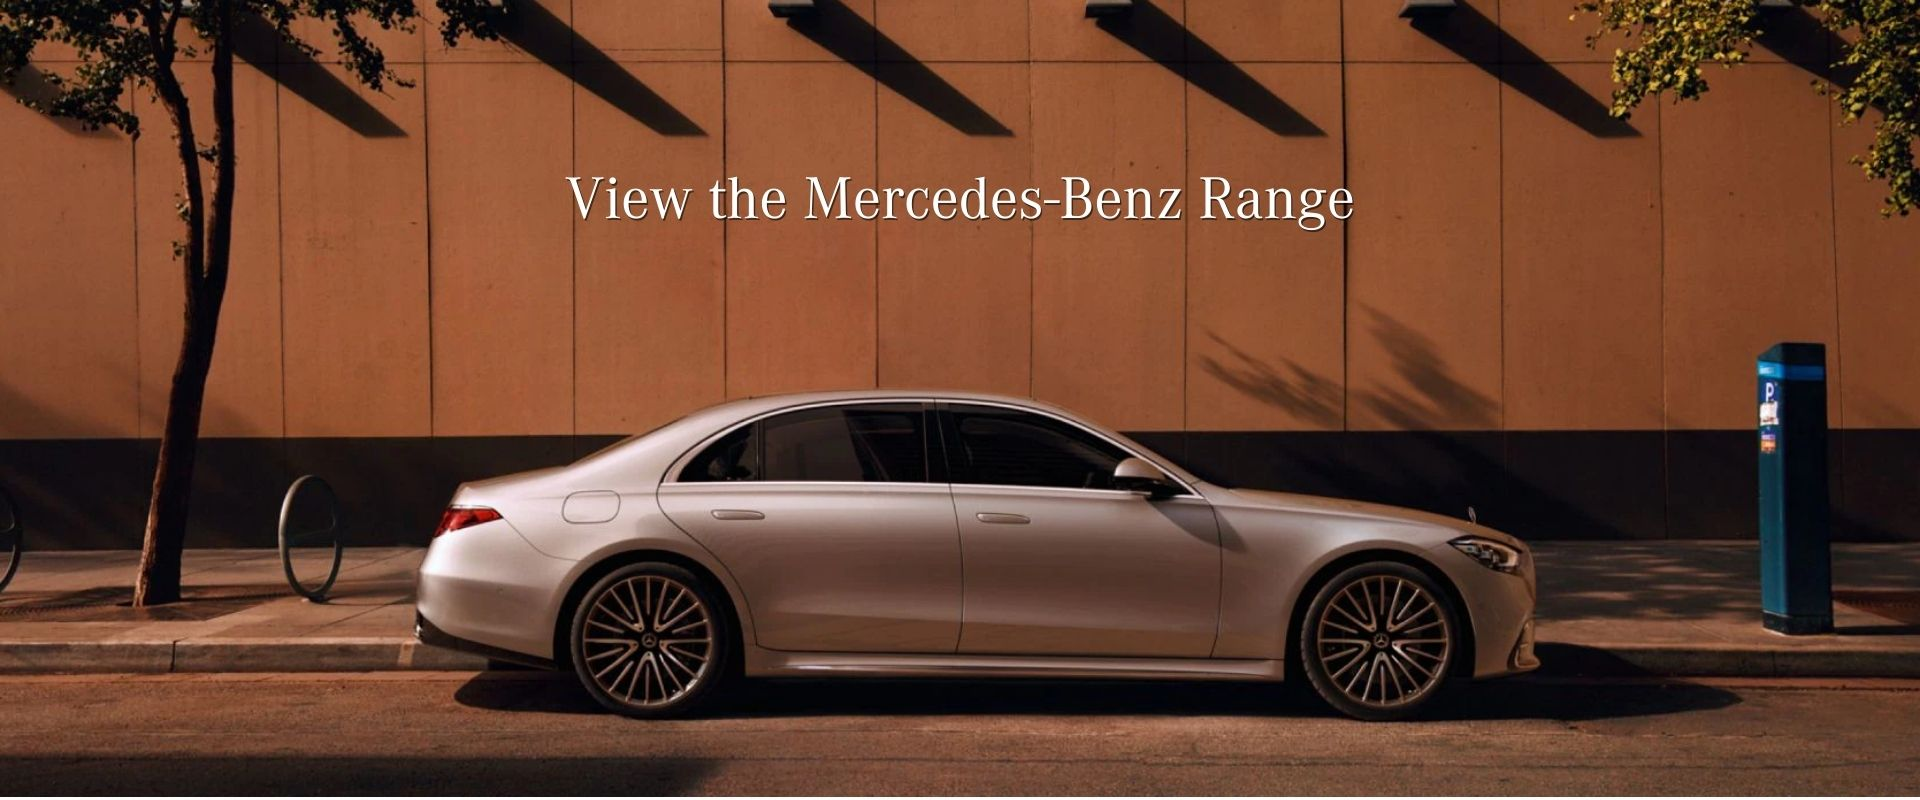 View our Mercedes-Benz Model Range